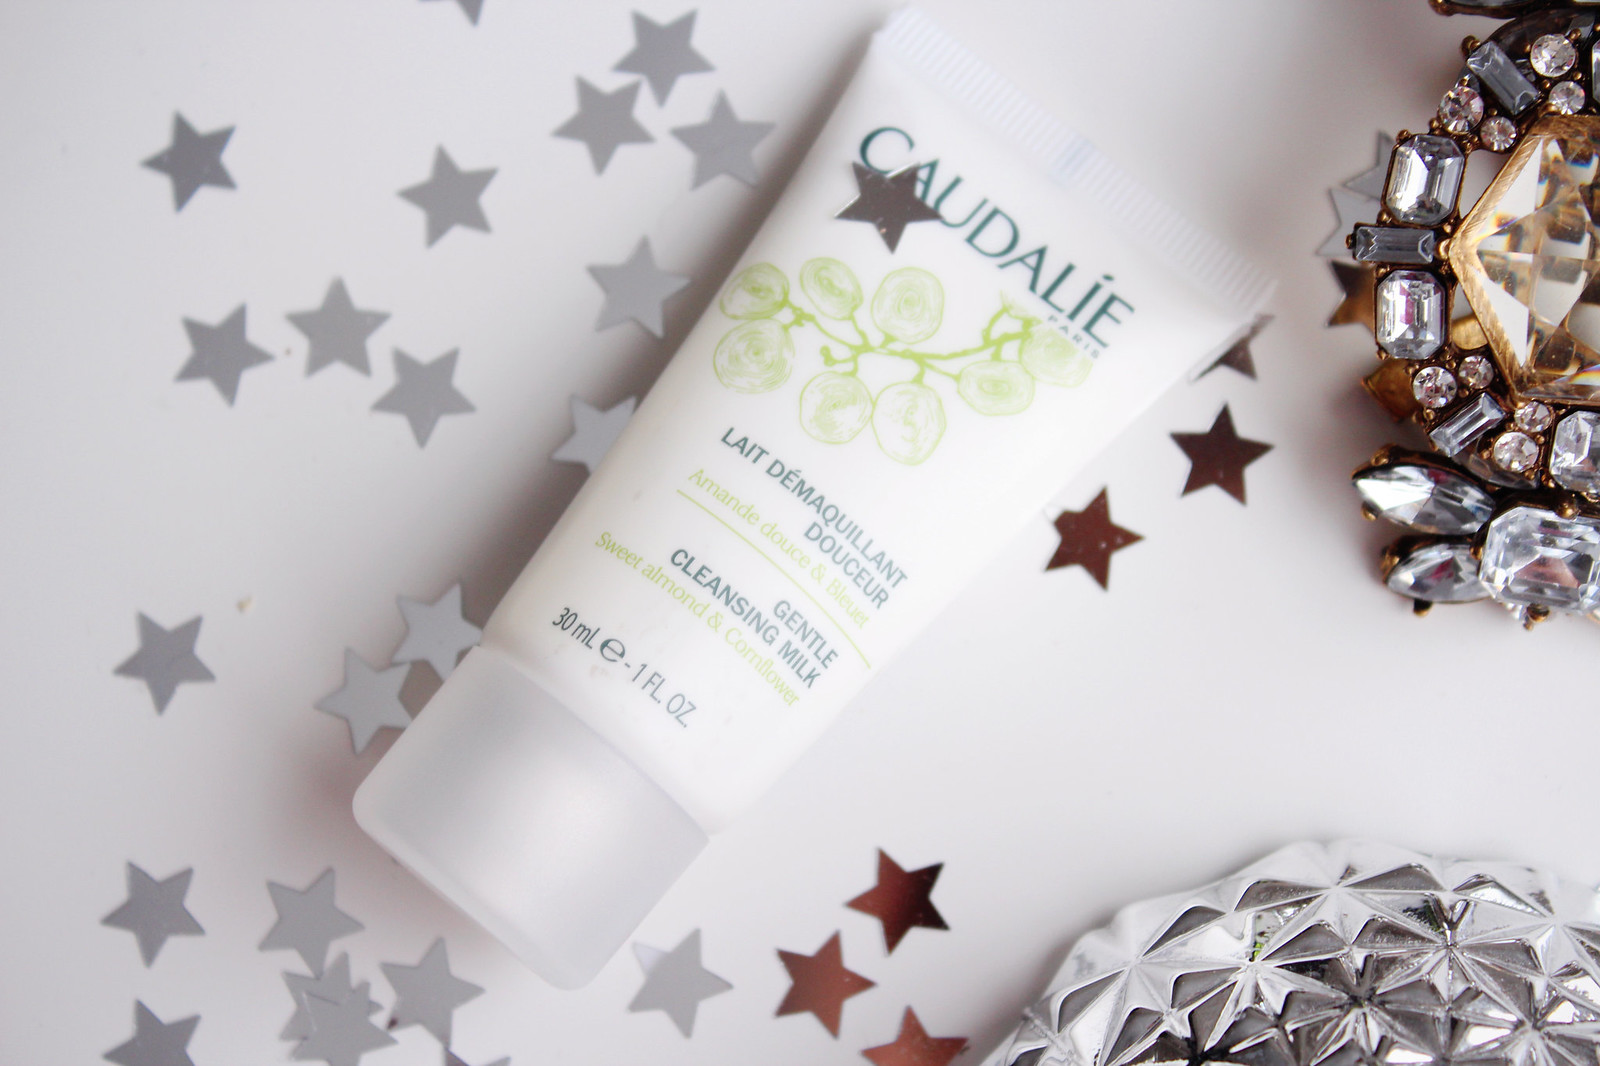 Caudalie cleansing milk review